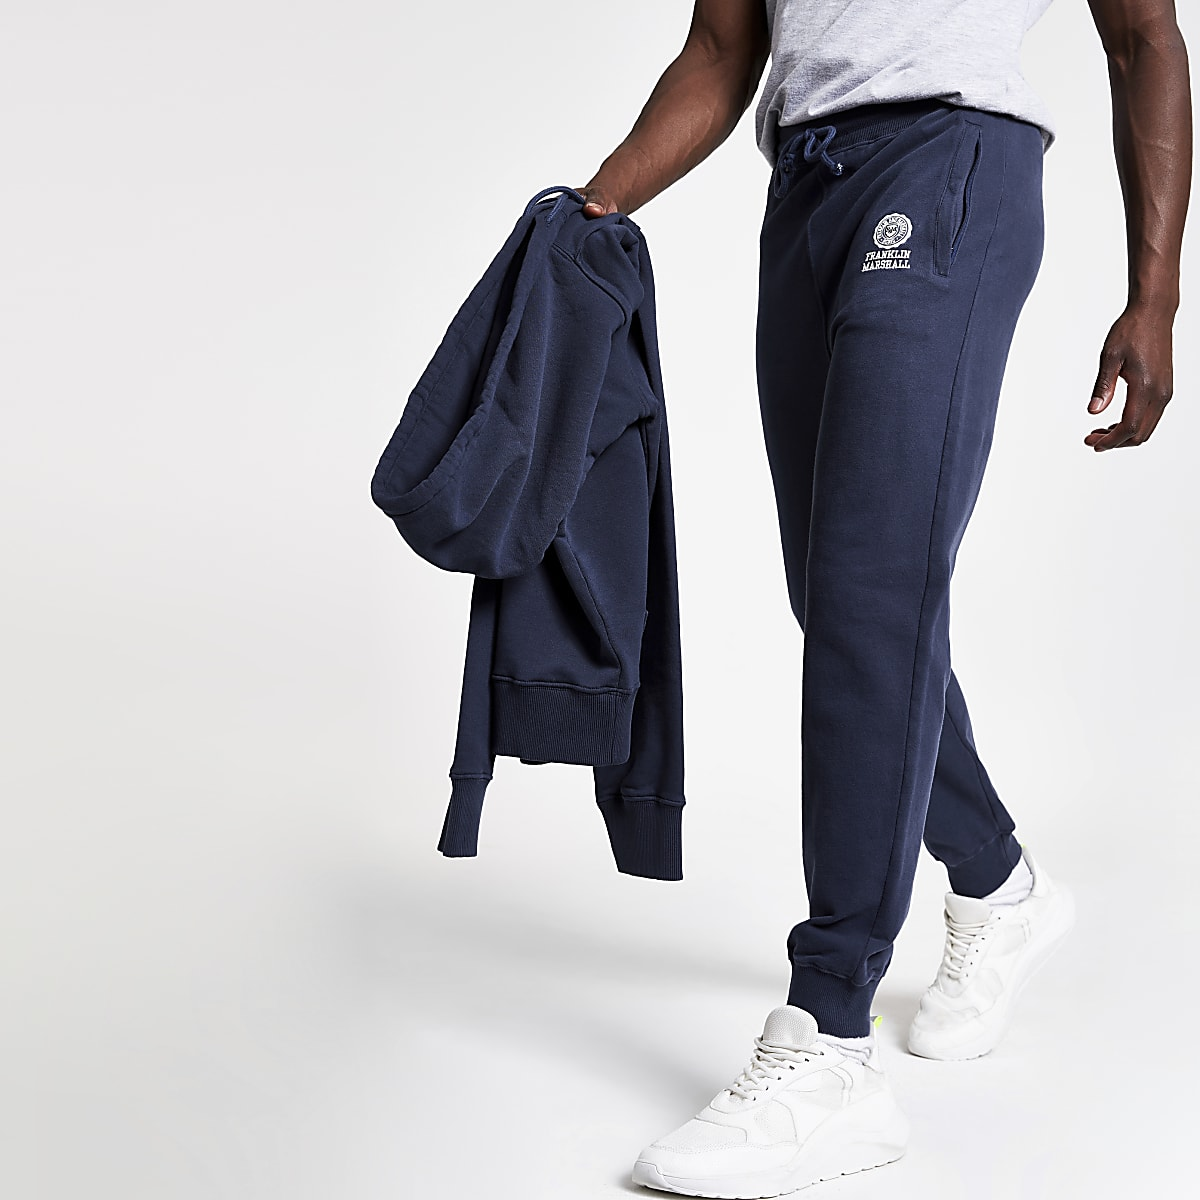 Franklin and Marshall navy joggers